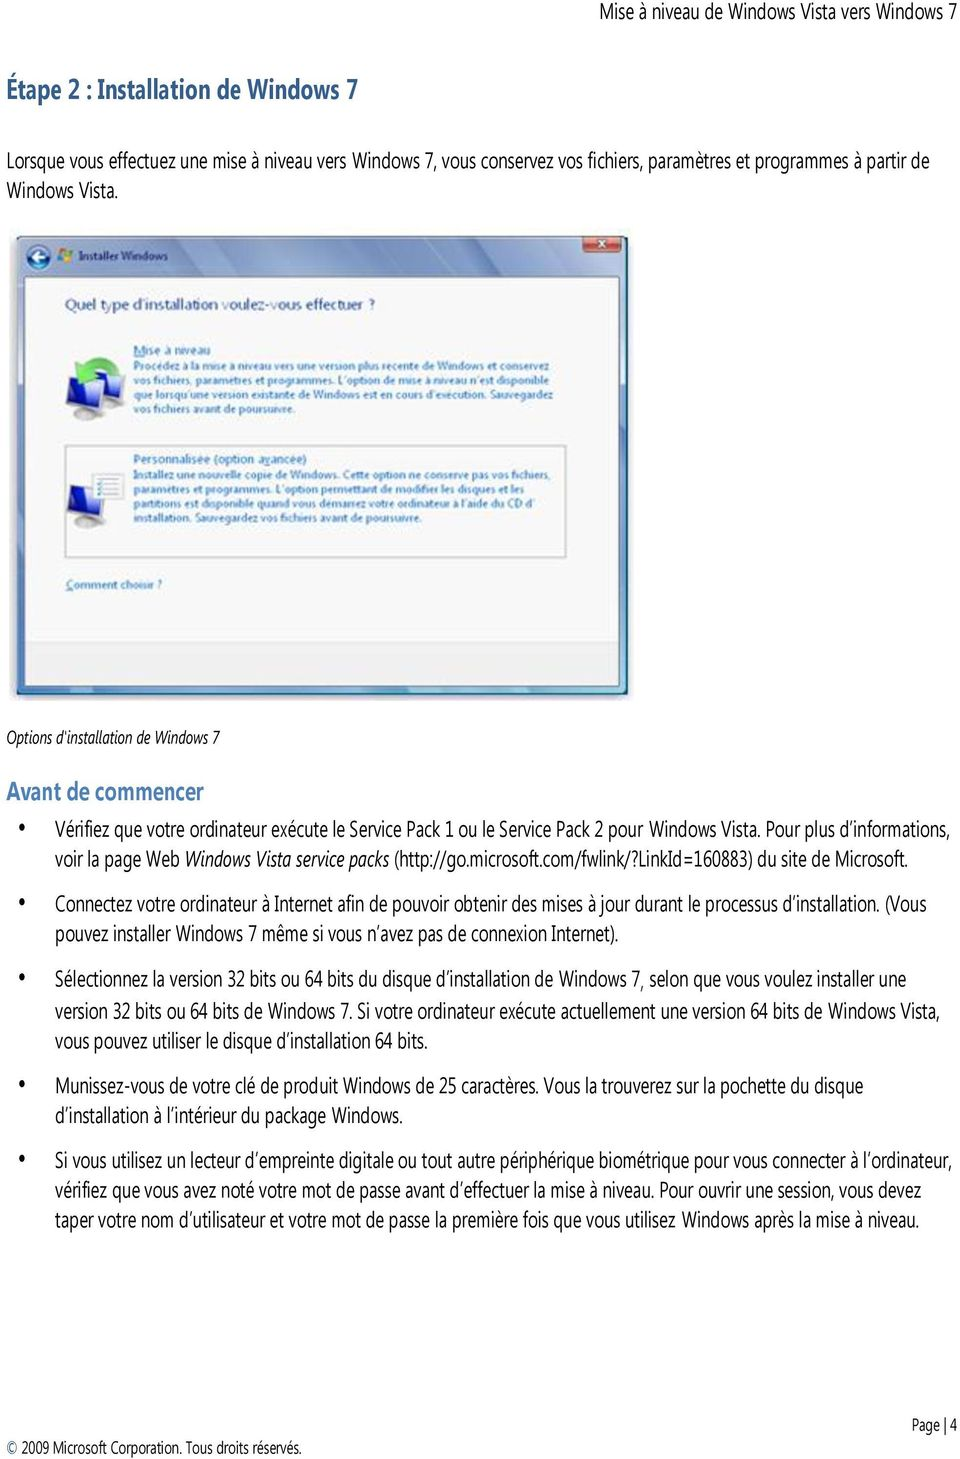 Pour plus d informations, voir la page Web Windows Vista service packs (http://go.microsoft.com/fwlink/?linkid=160883) du site de Microsoft.